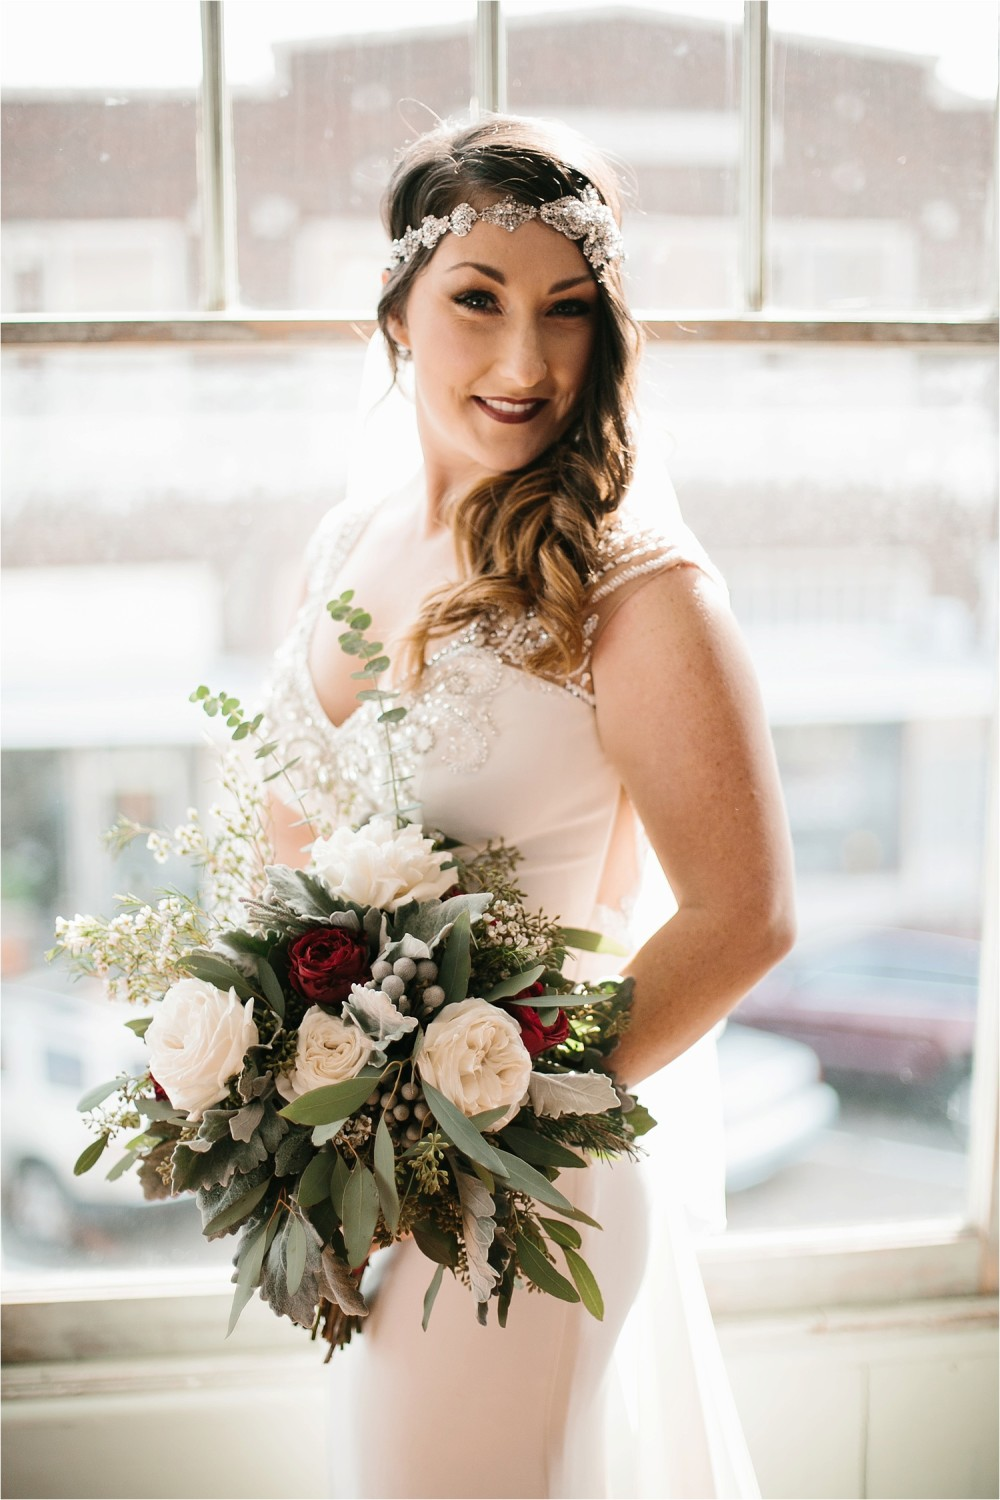 whittney-drew-__-an-intimate-wine-and-navy-wedding-in-an-industrial-venue-at-loft-123-in-paris-tx-by-north-texas-wedding-photographer-rachel-meagan-photography-_-030